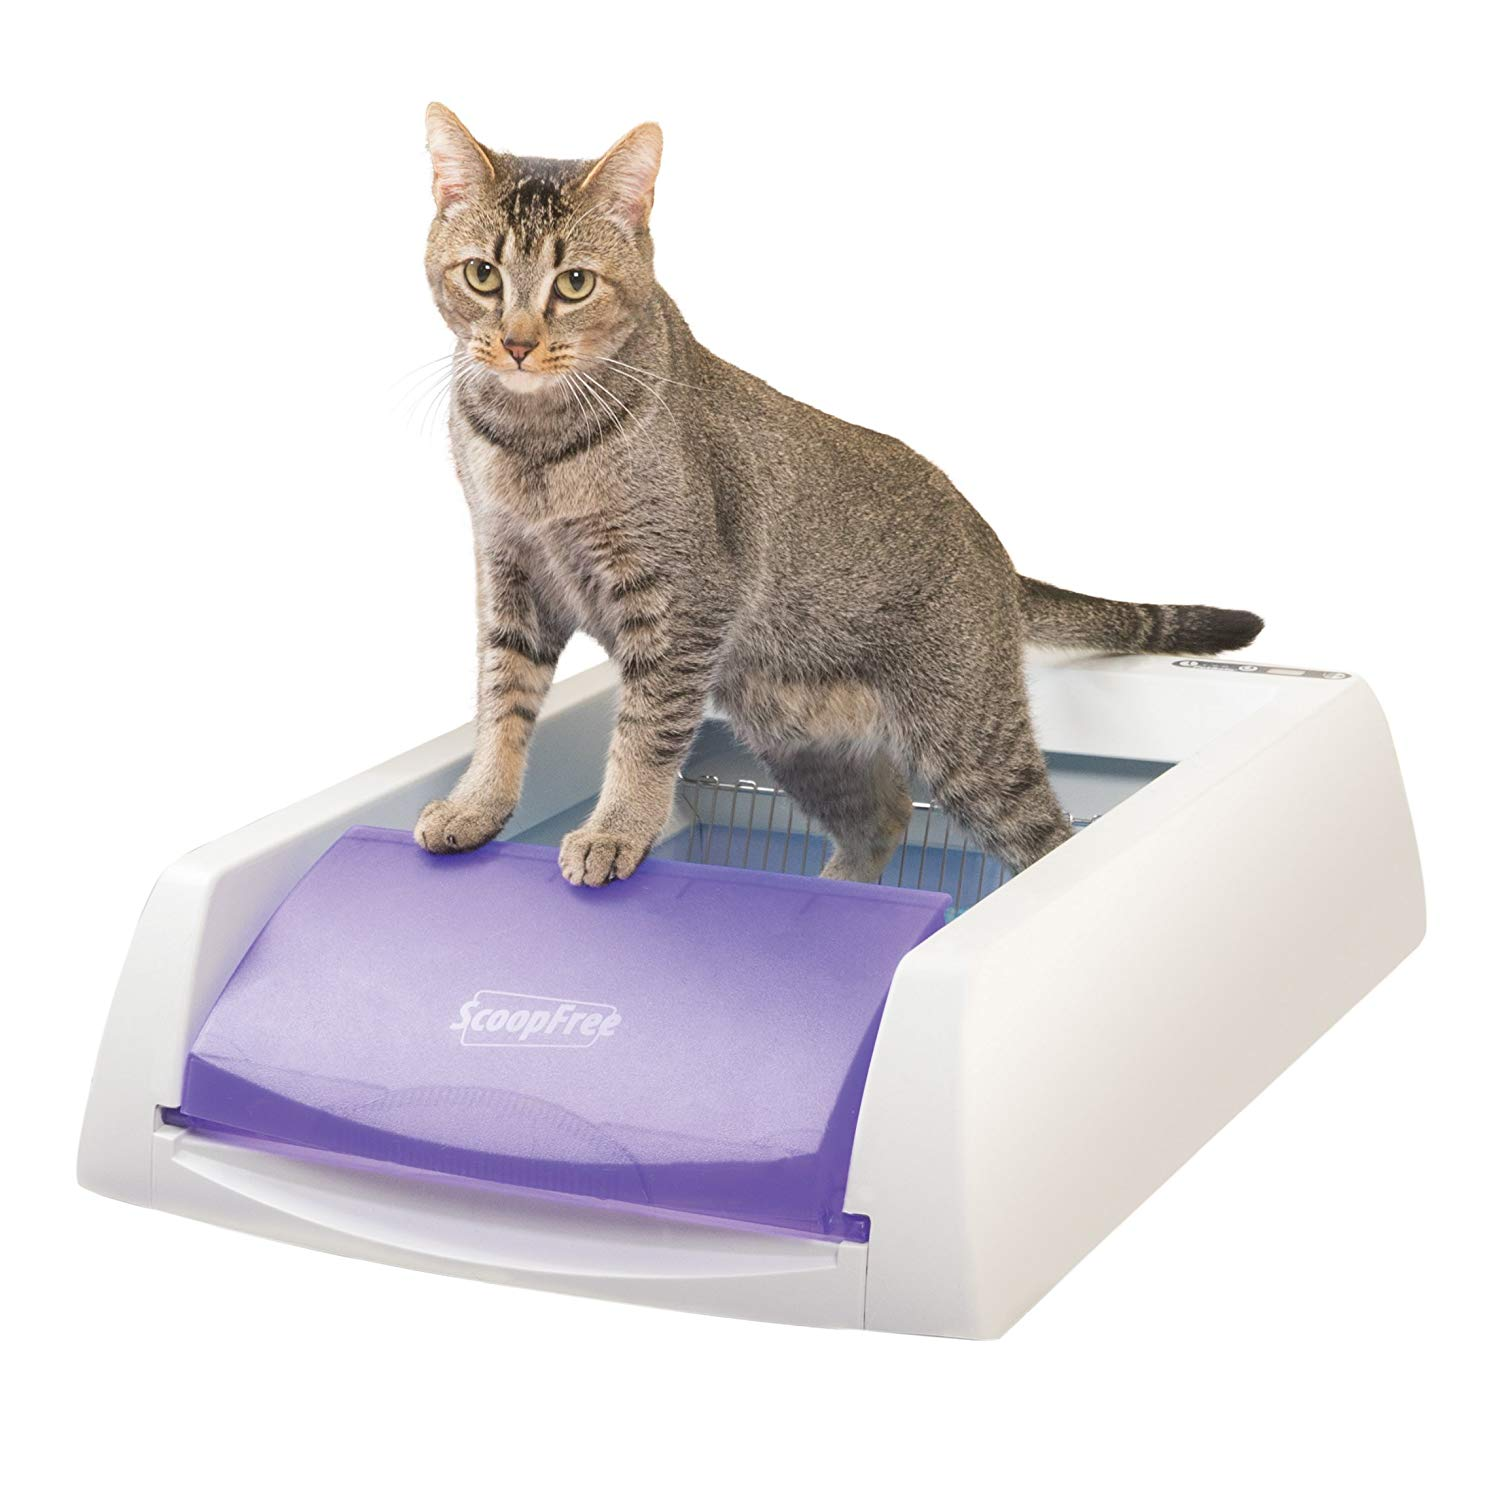 PetSafe ScoopFree Original Self-Cleaning Litter Box